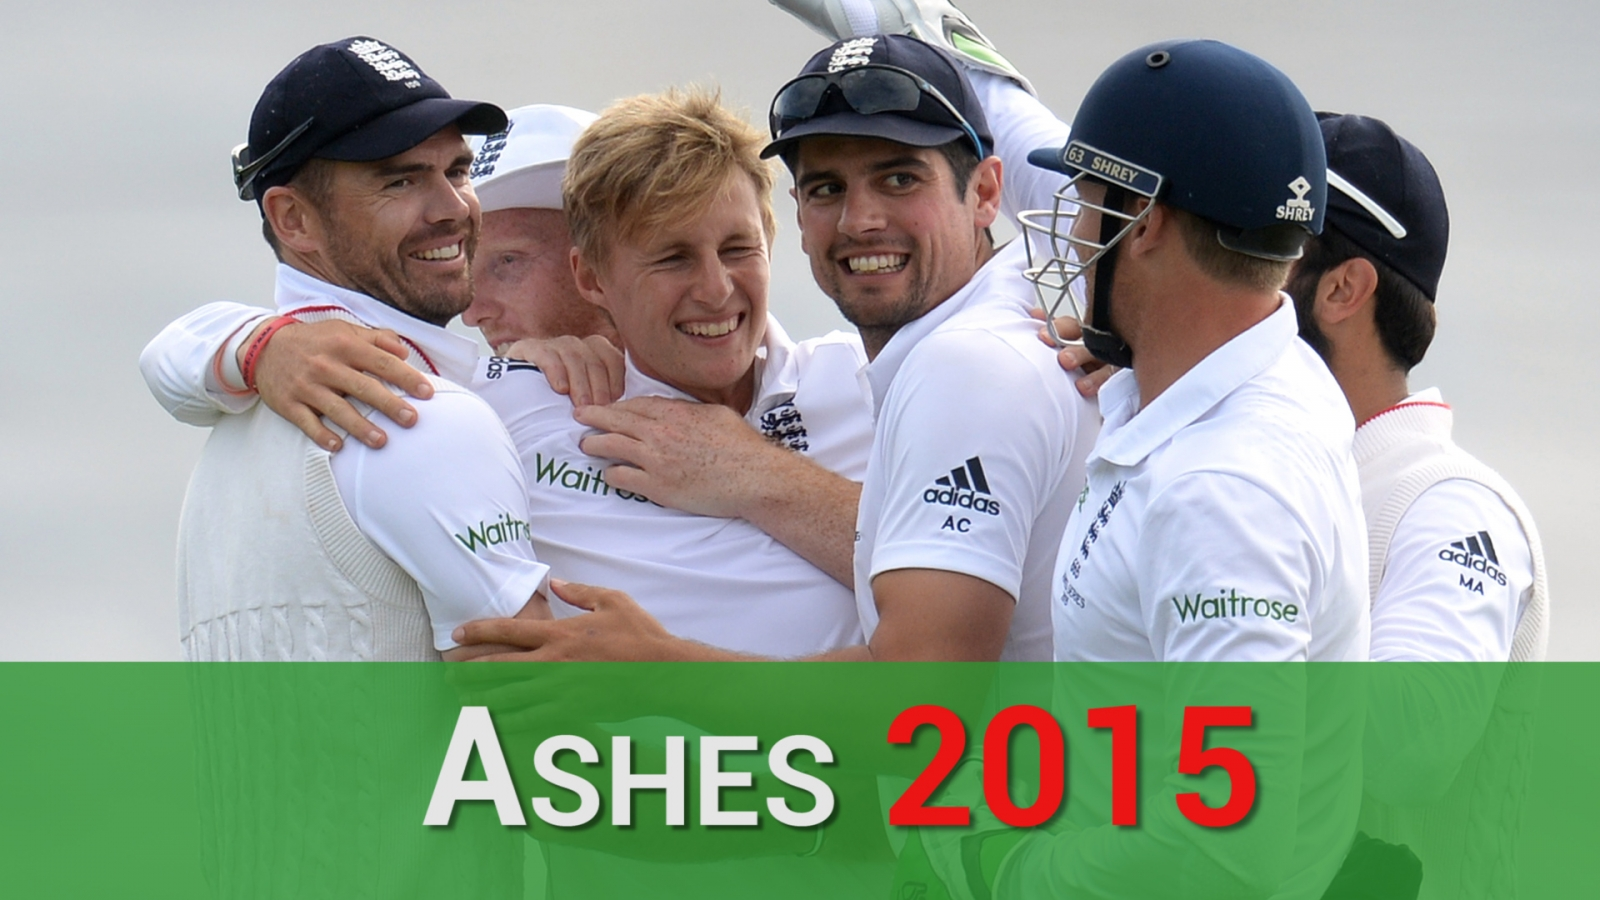 Ashes 2015